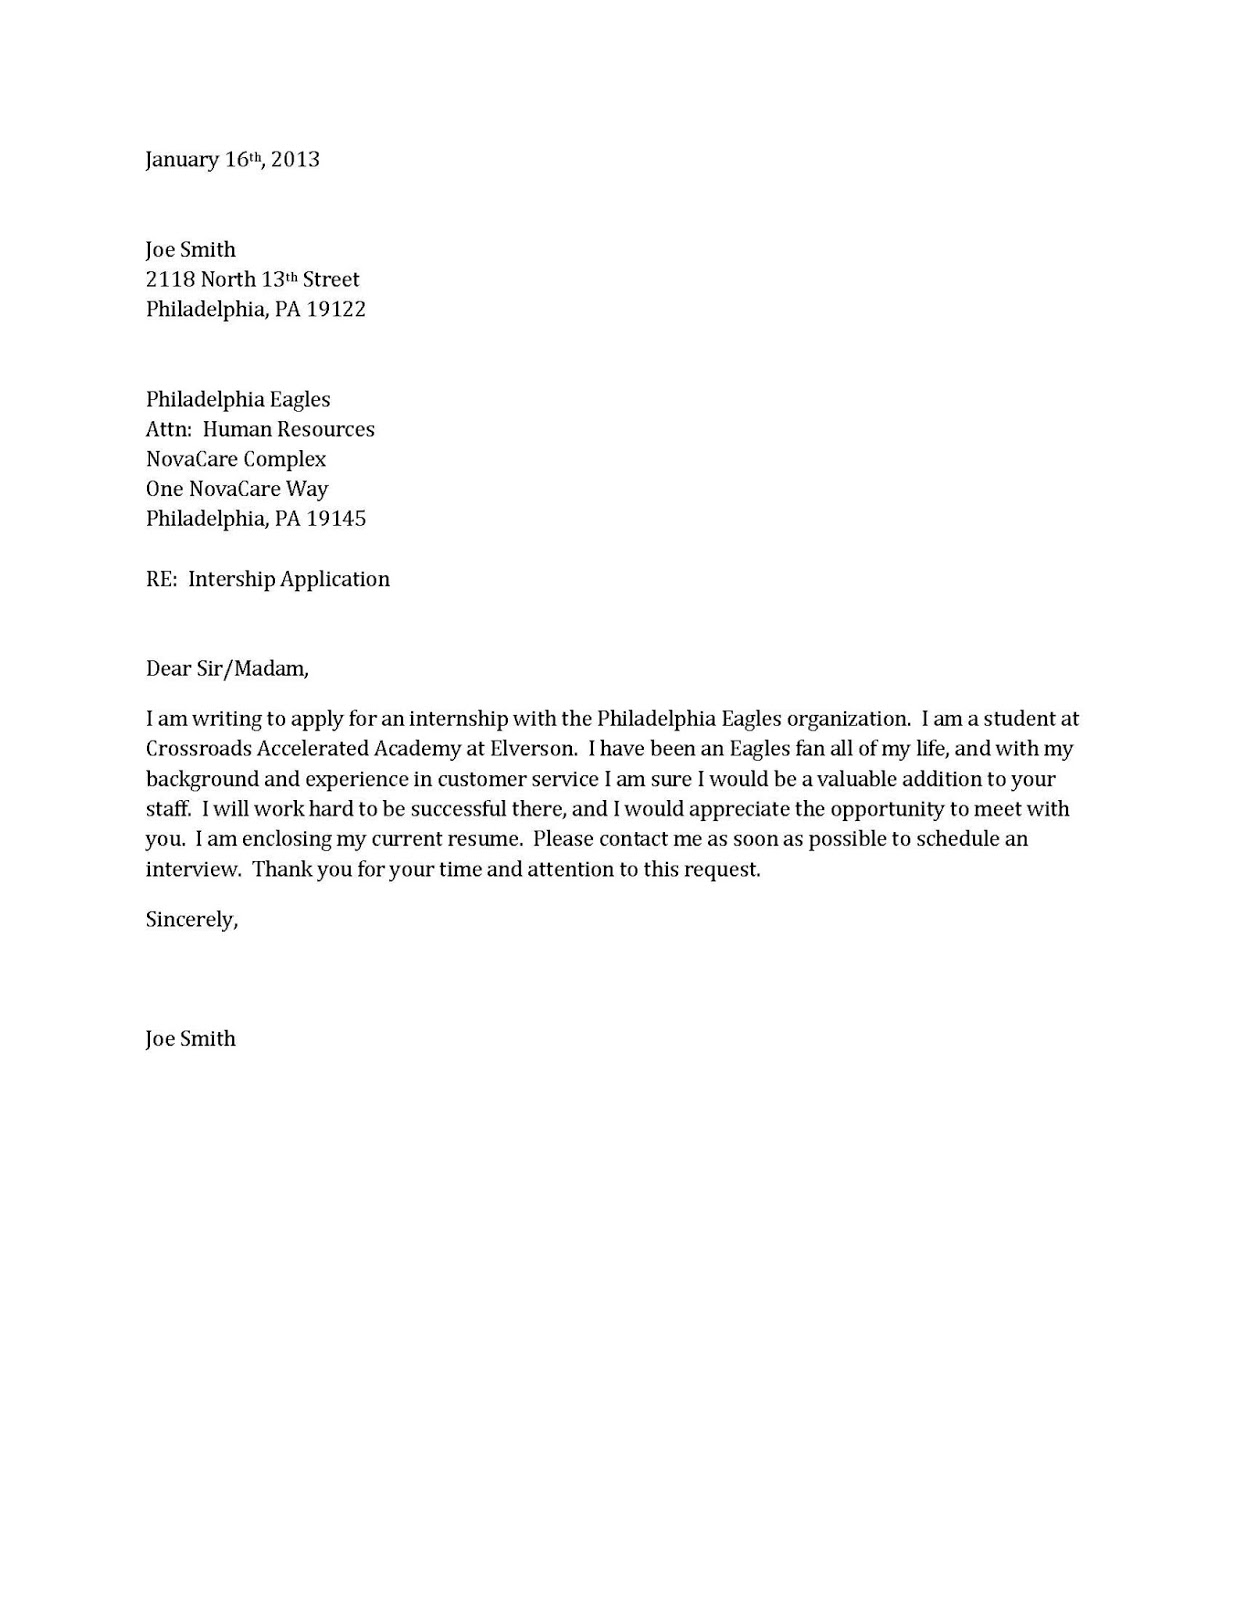 tips on how to write a great cover letter for resume related posts - Resume Letter Of Application